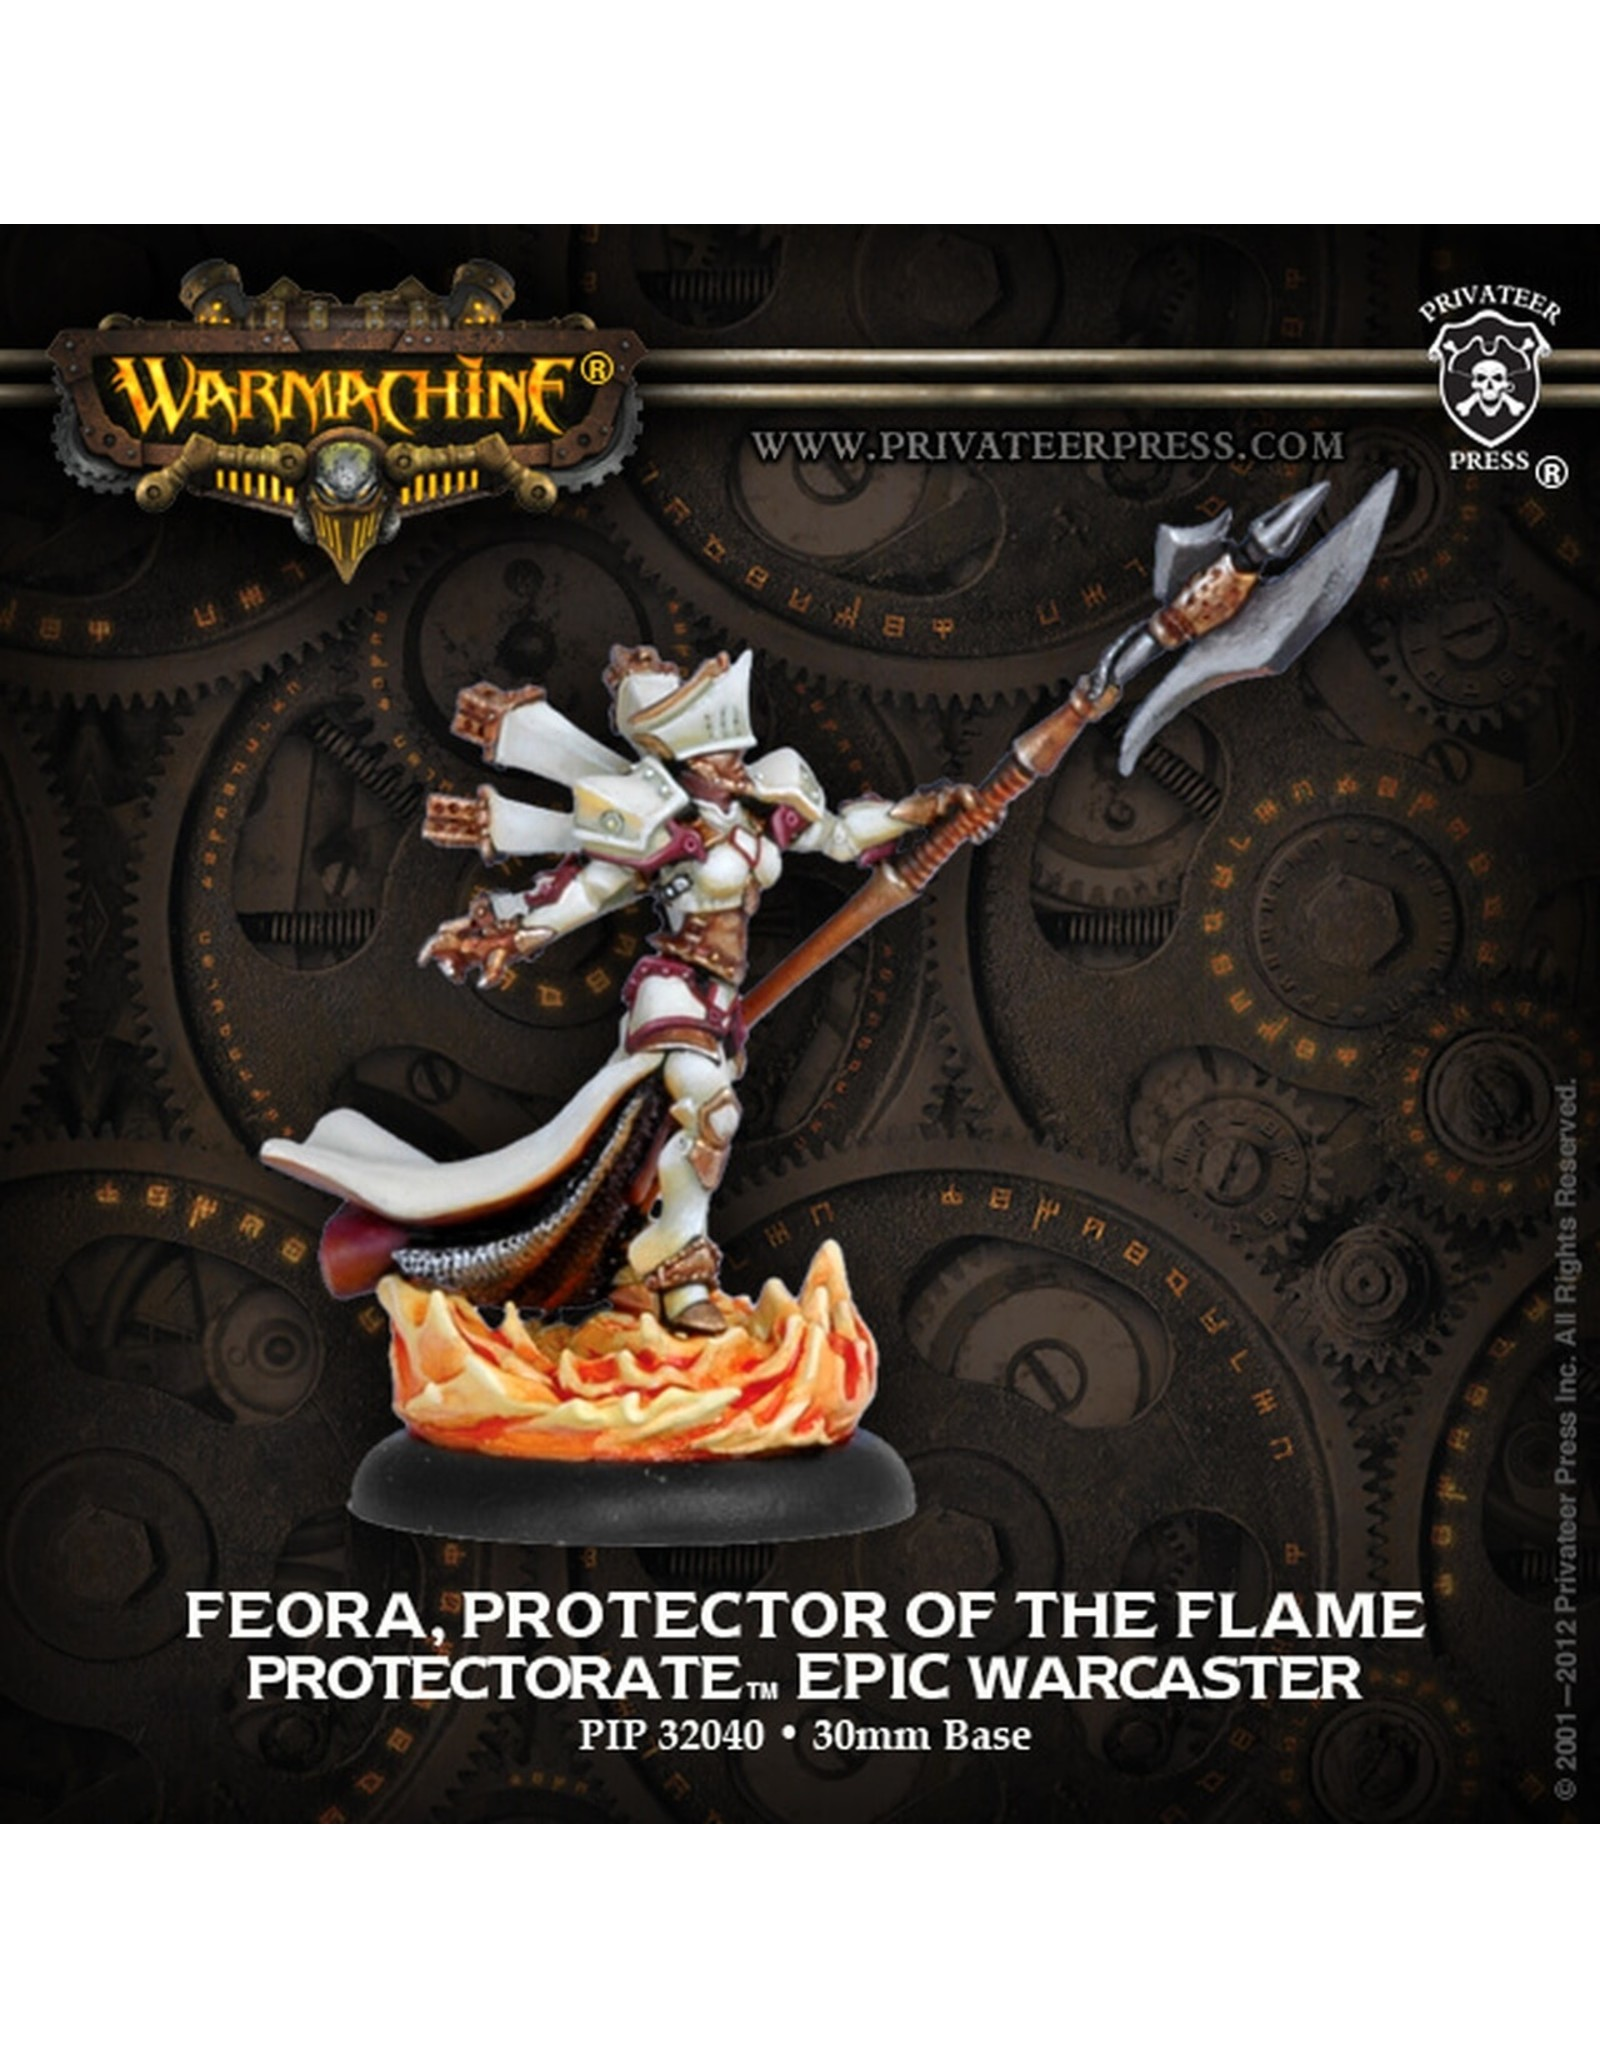 Warmachine: The Protectorate of Menoth Feora, Protector of the Flame Epic Warcaster (White Metal)